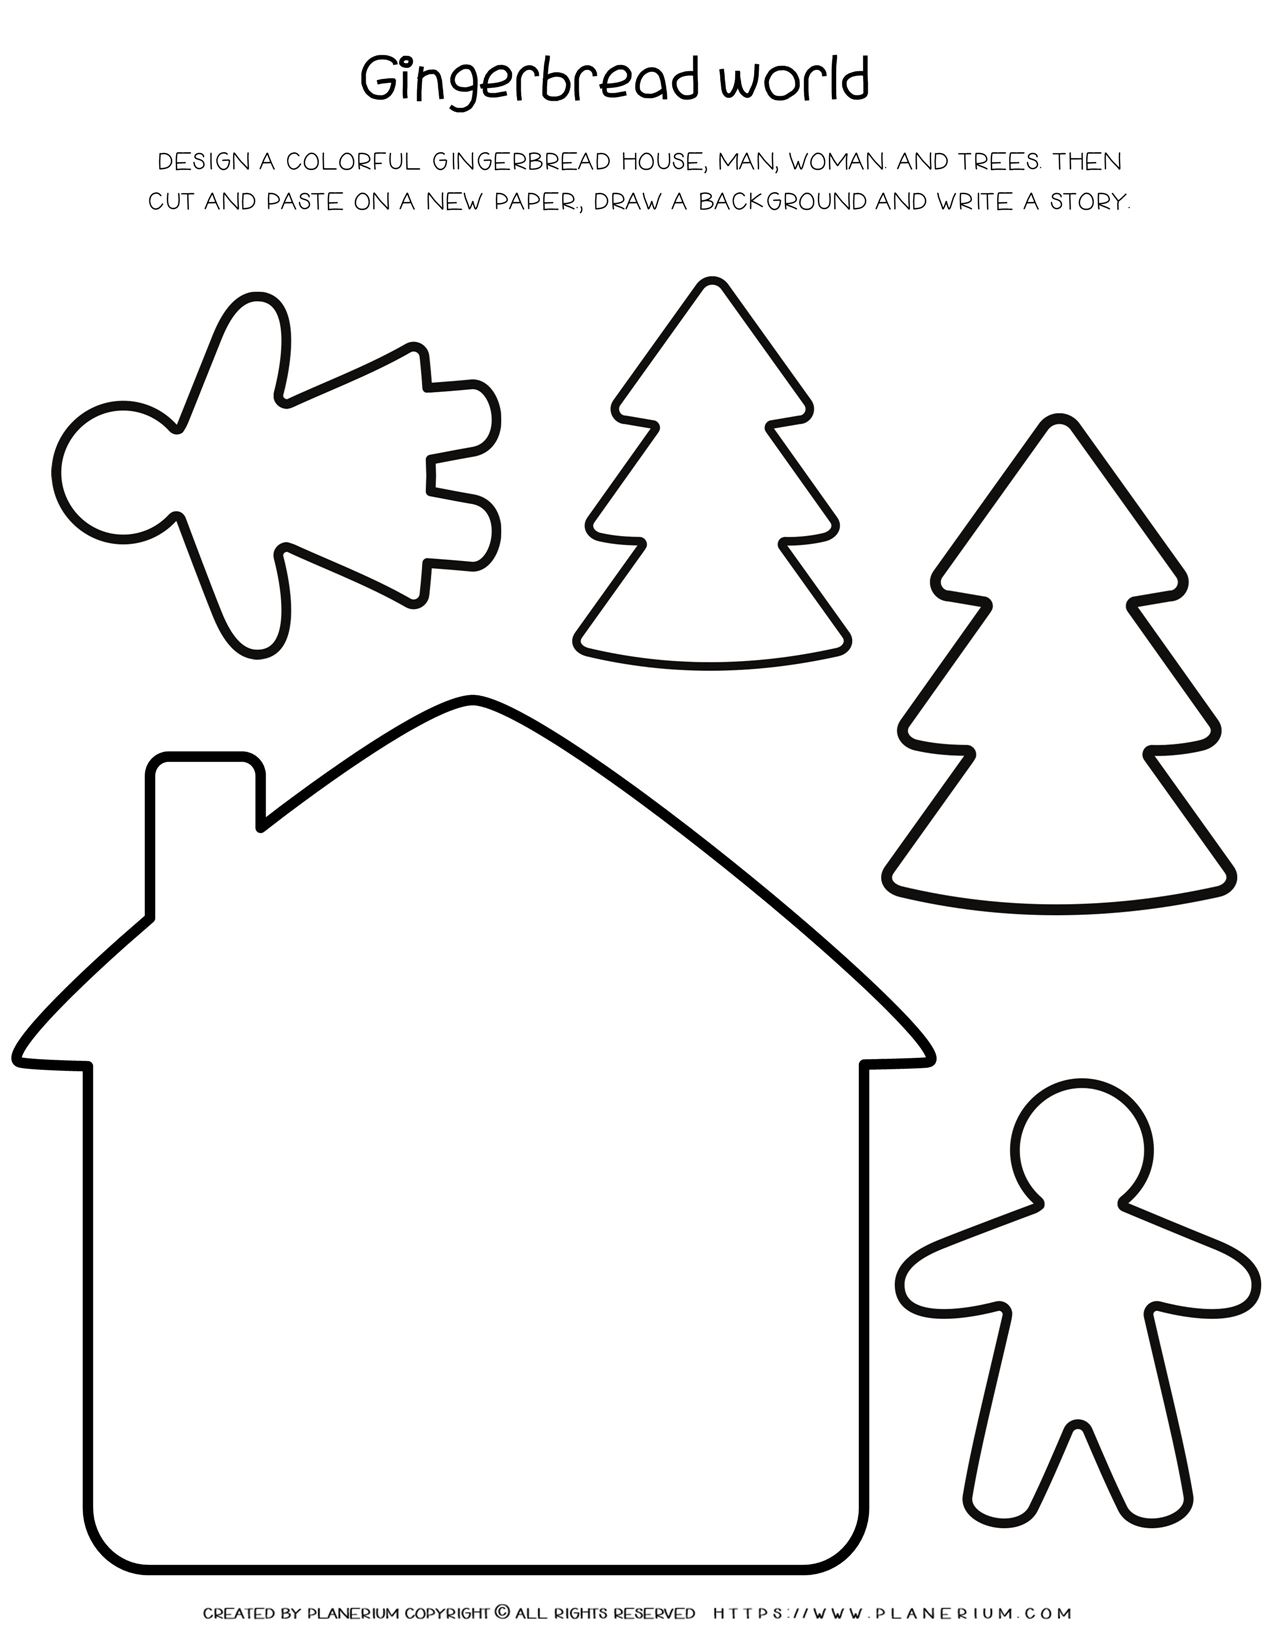 Christmas Worksheet - Gingerbread World Design and Writing Activity | Planerium